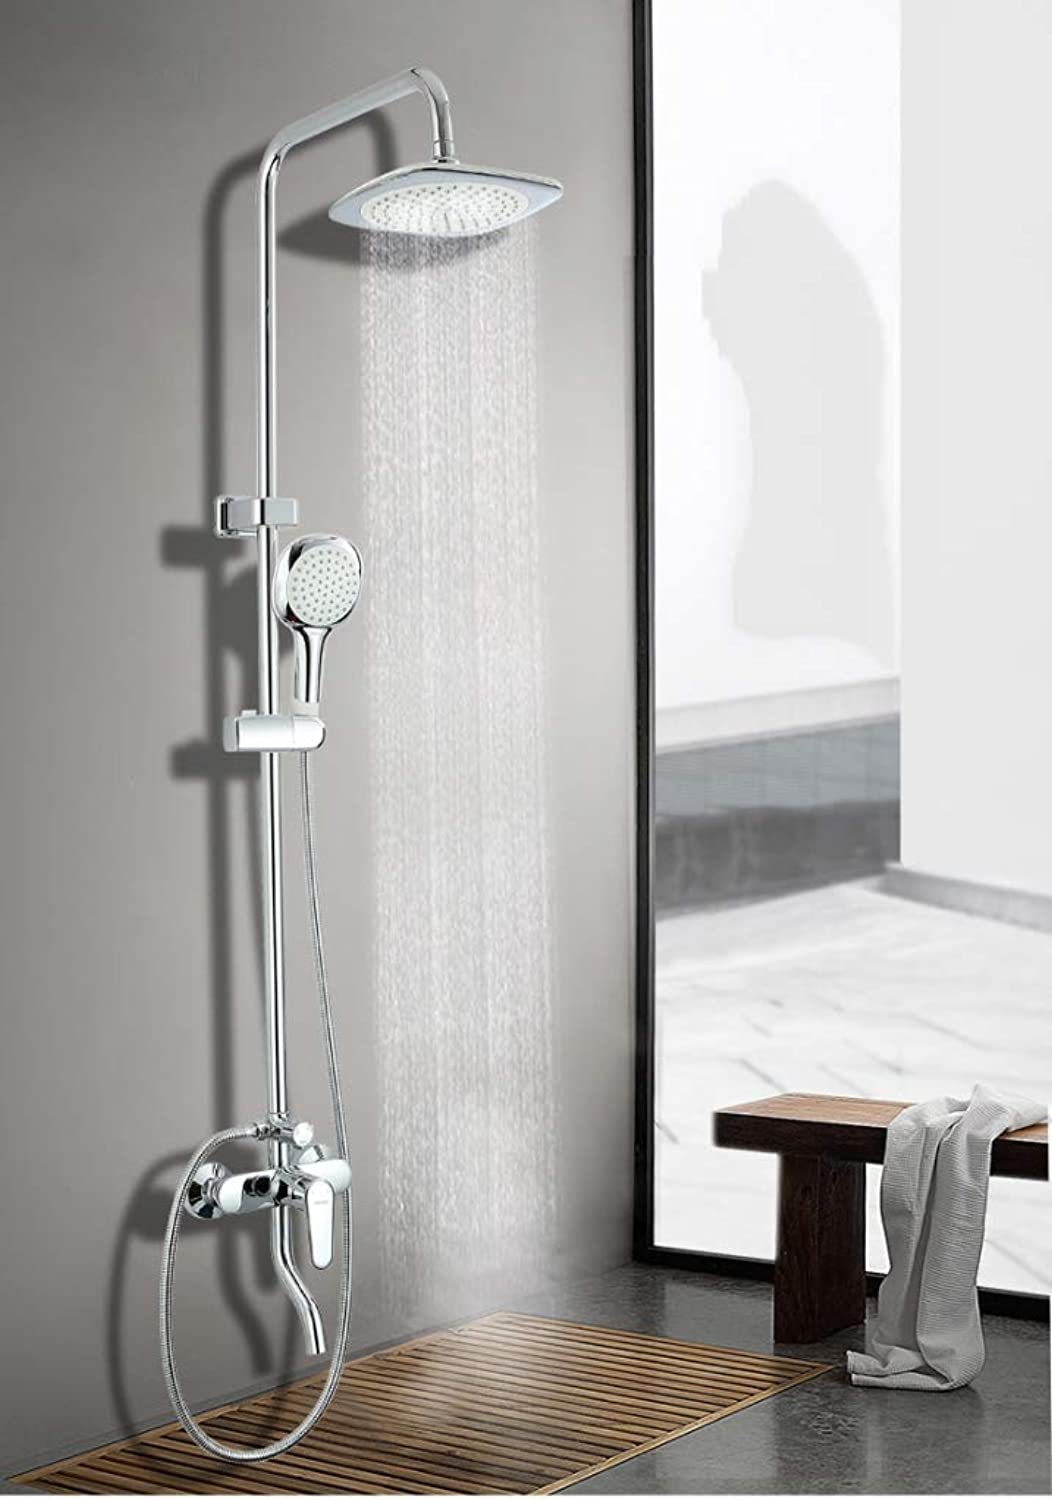 LHW Shower Set Copper Shell Pipe Bath Chrome Drench Massage Stage 3 Water Shower Set